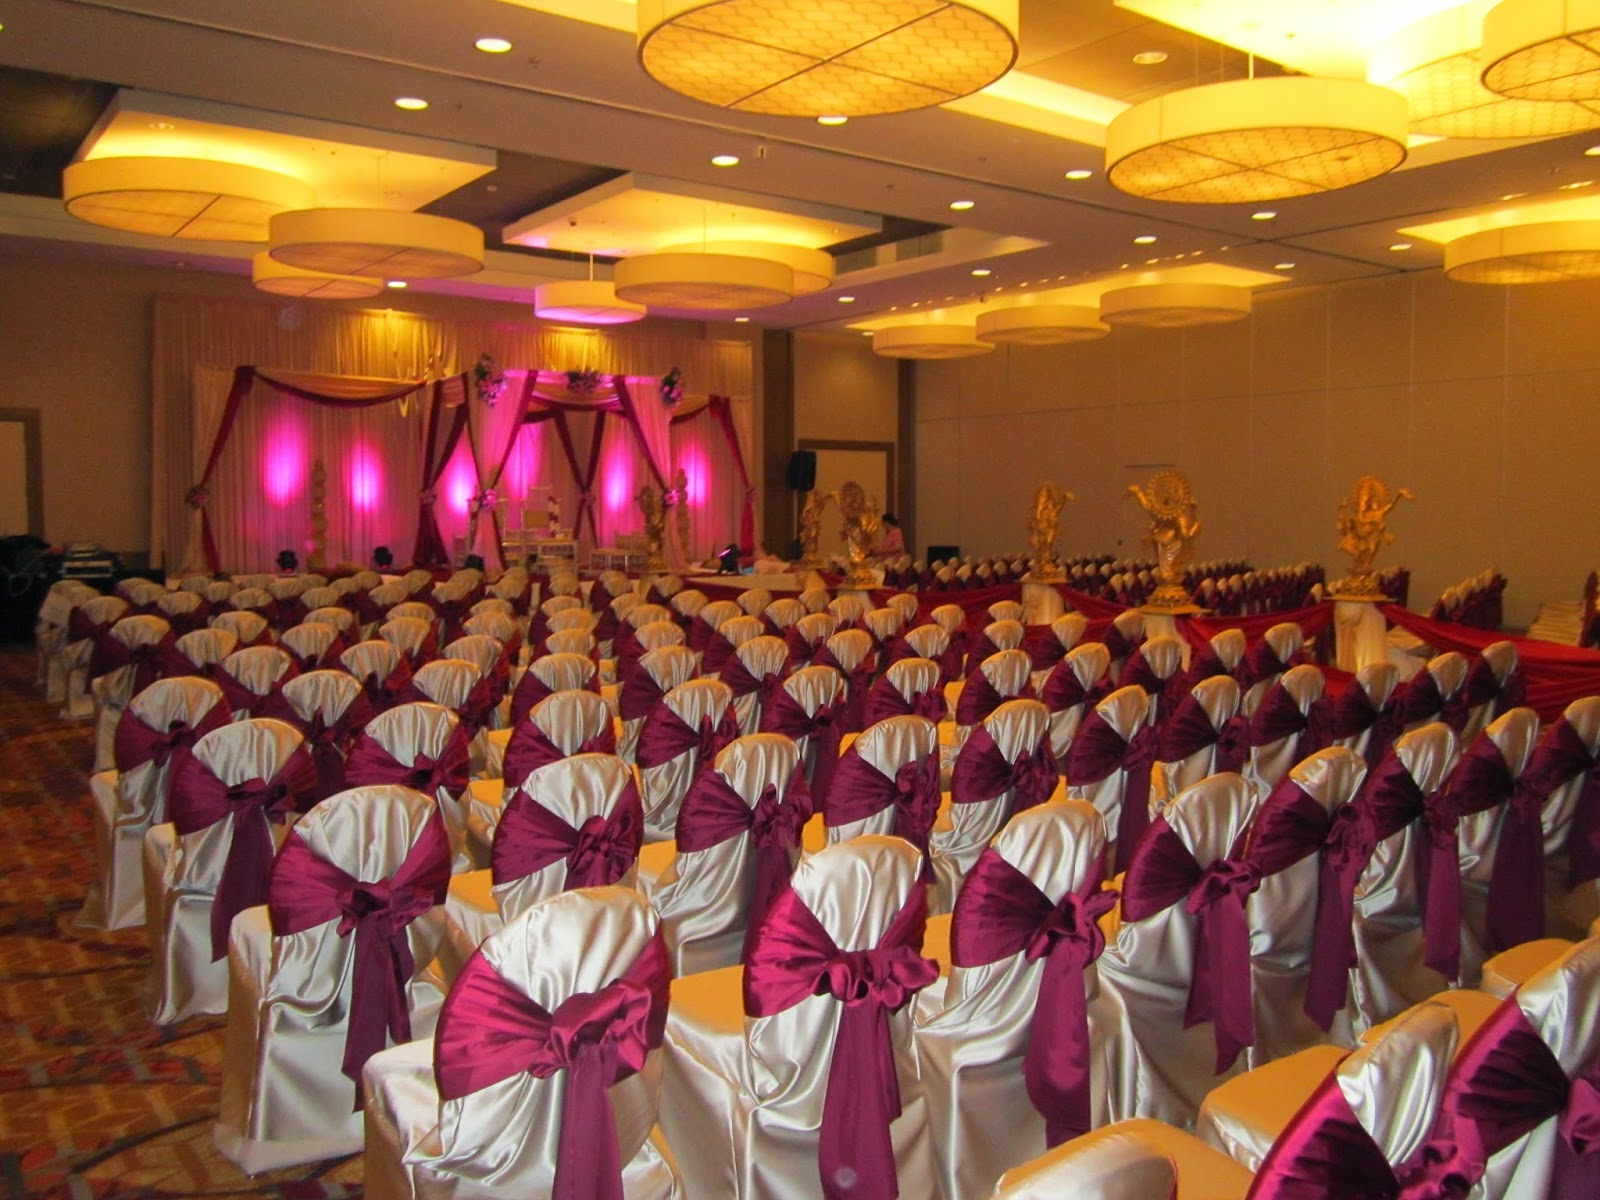 Chicago marriott naperville blog south asian weddings - Burgundy and white wedding decorations ...